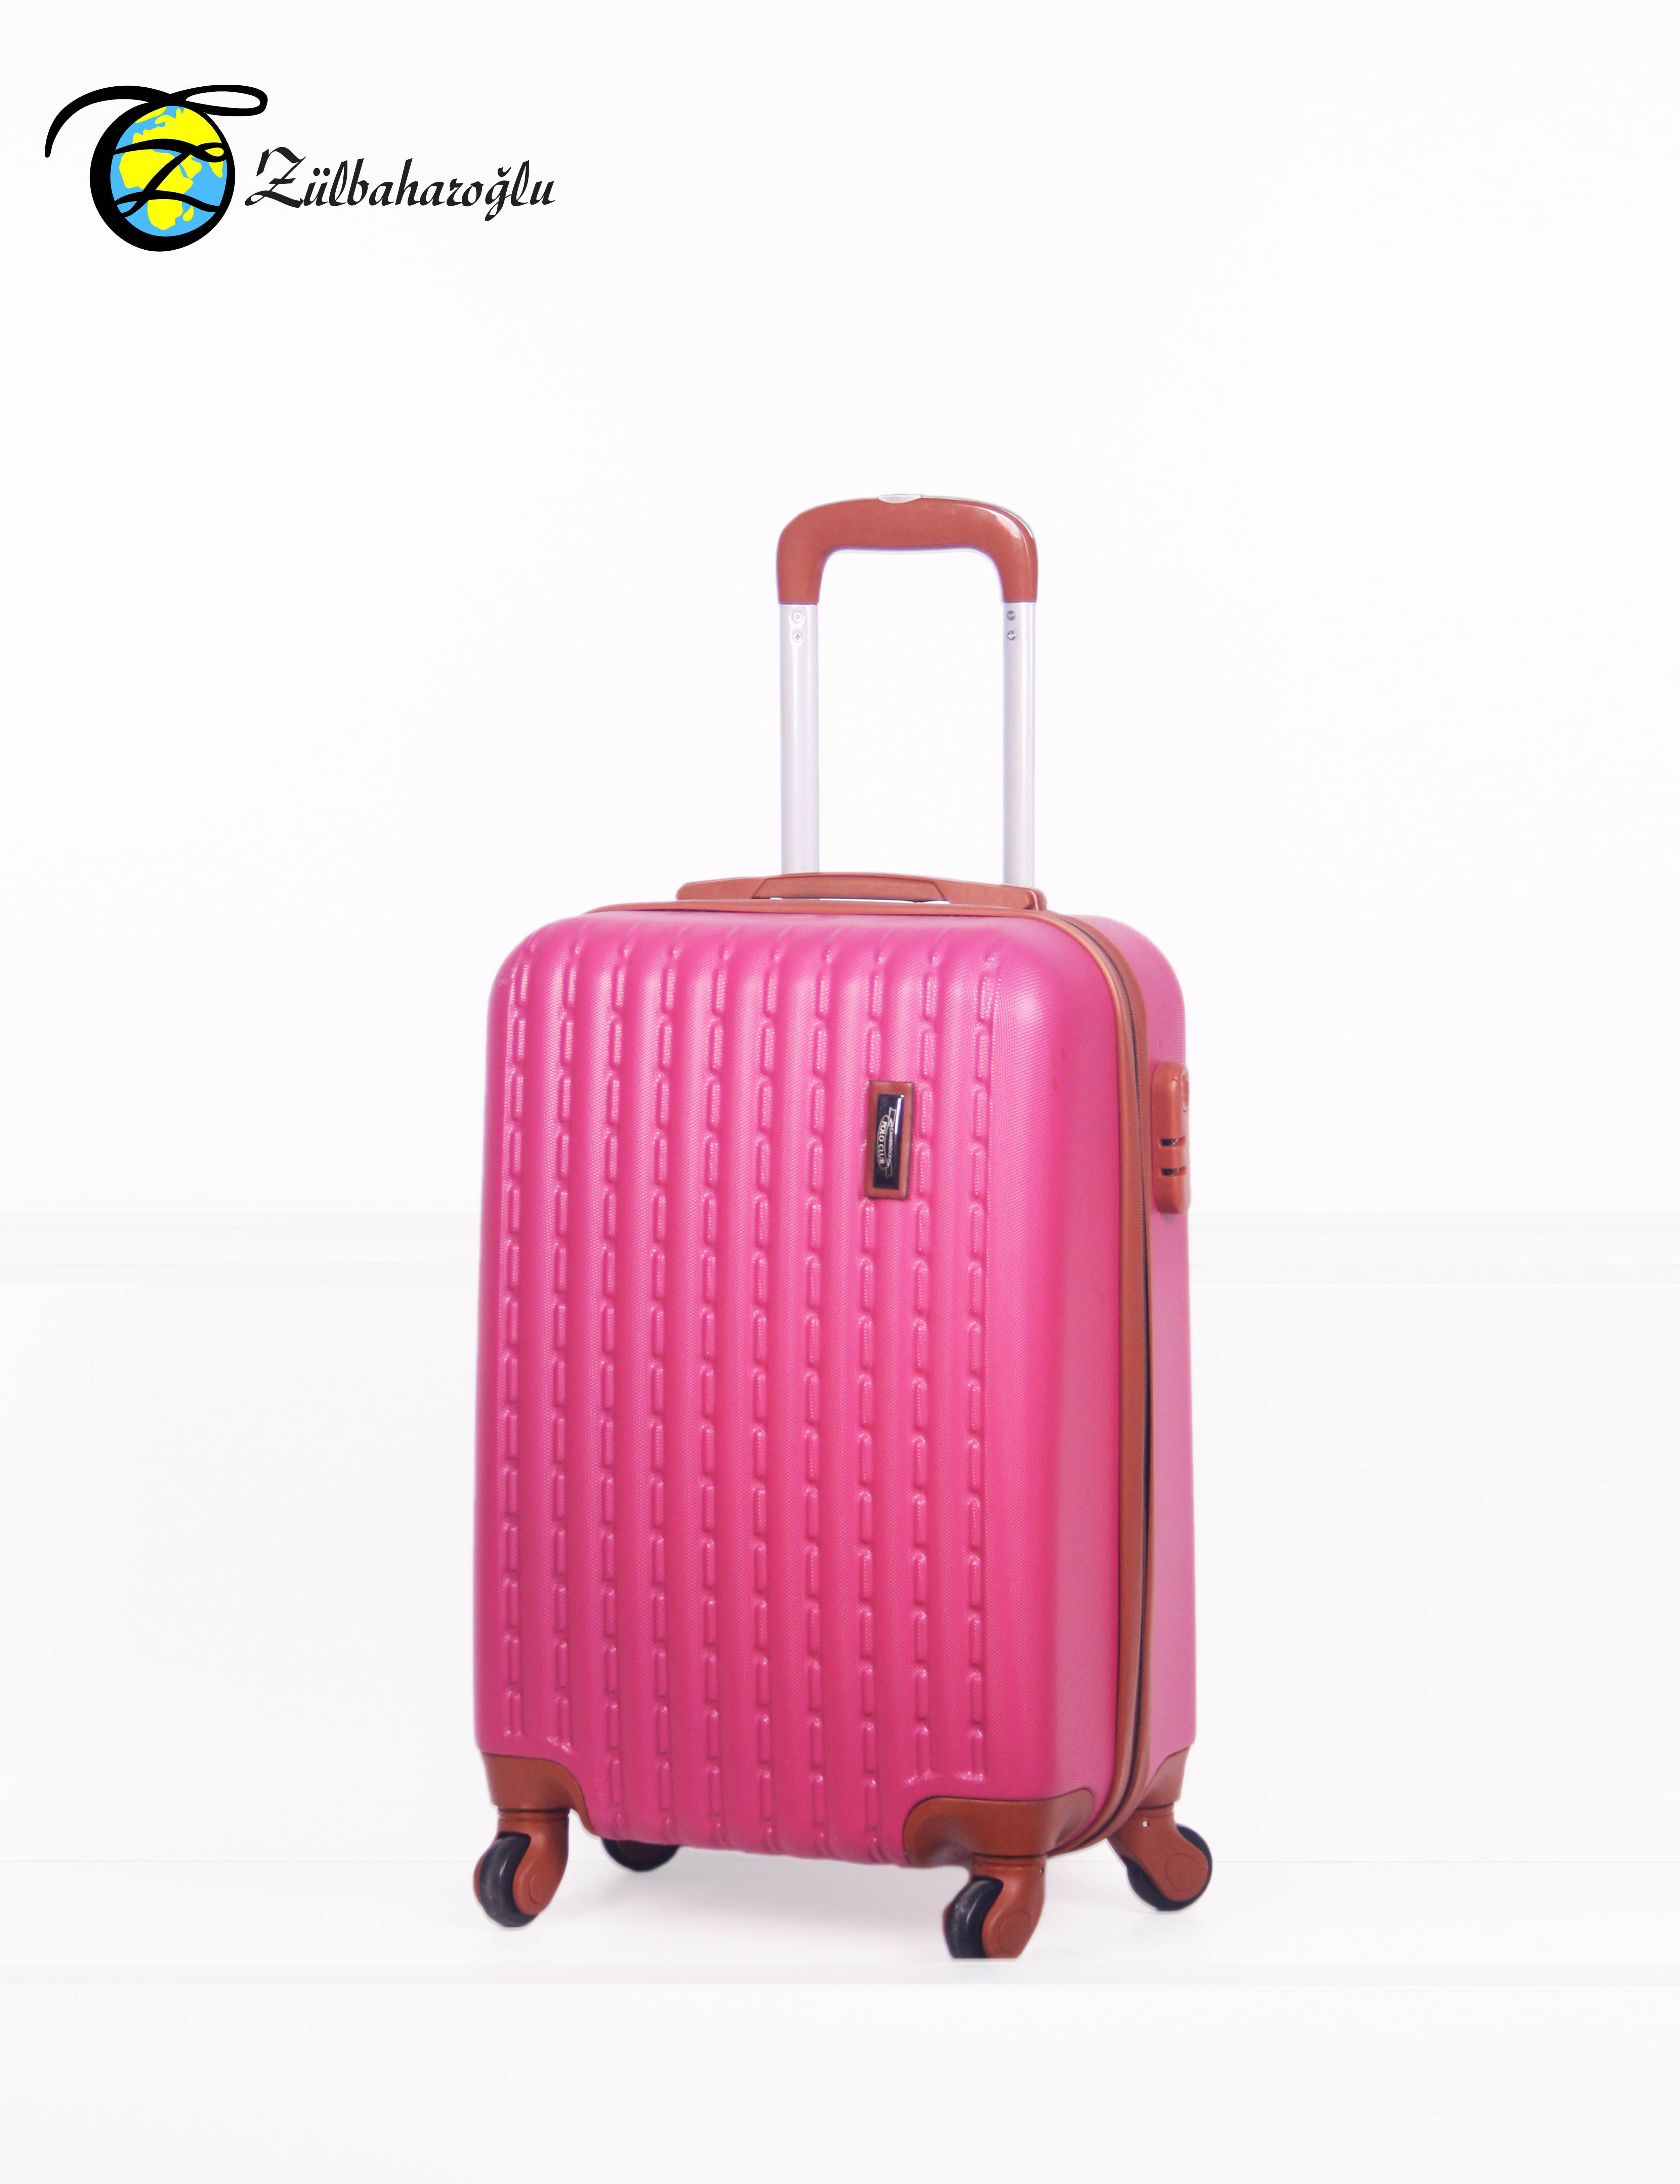 Fashion Travel Luggage ABS Luggage Set Made In Turkey Luggage Bags Cases